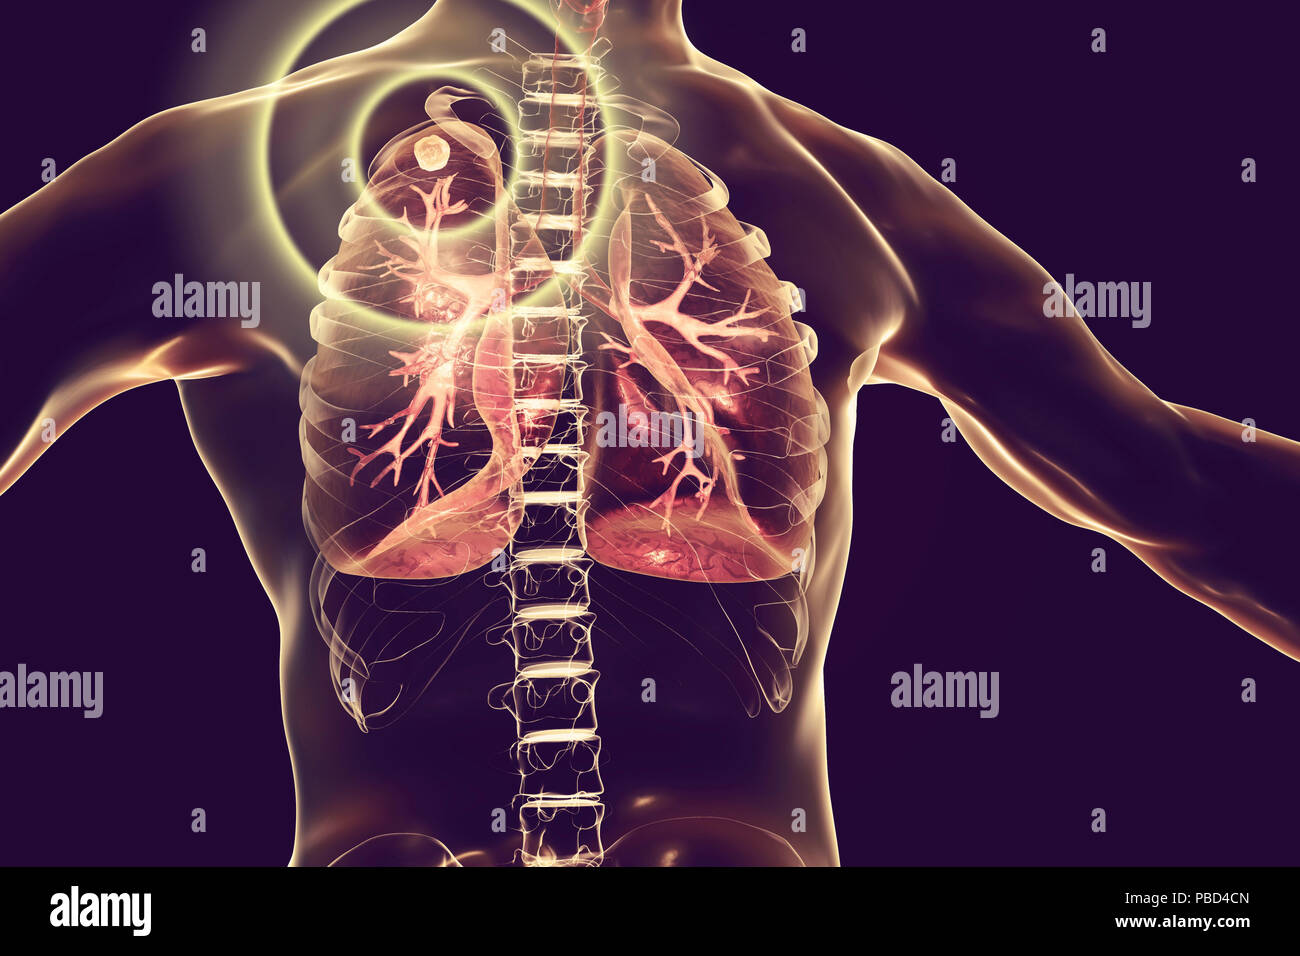 Treatment and prevention of tuberculosis, conceptual illustration. - Stock Image